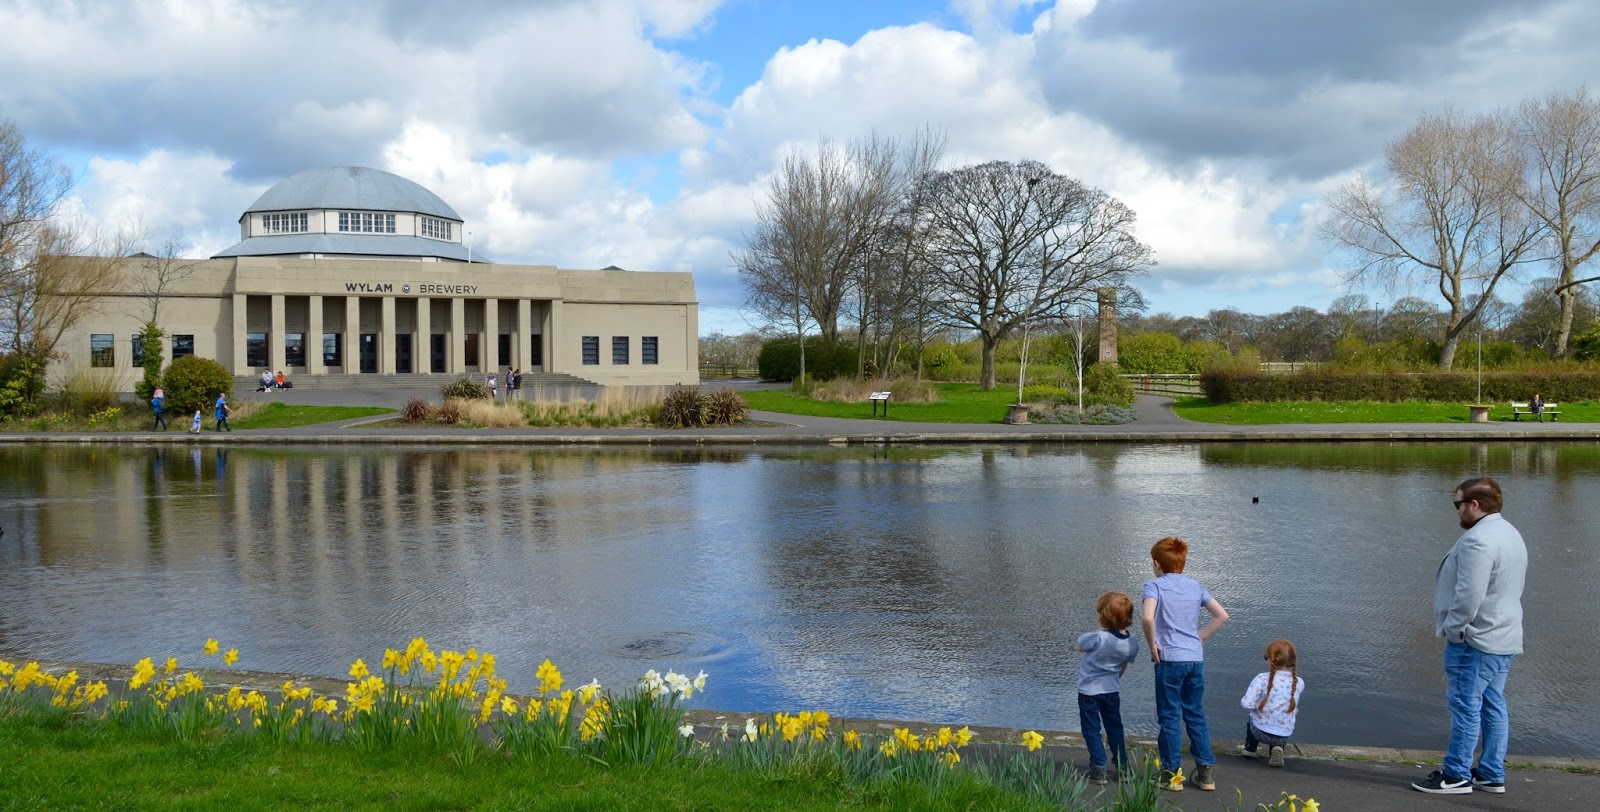 10+ Free Things To Do In Newcastle Upon Tyne - Exhibition Park